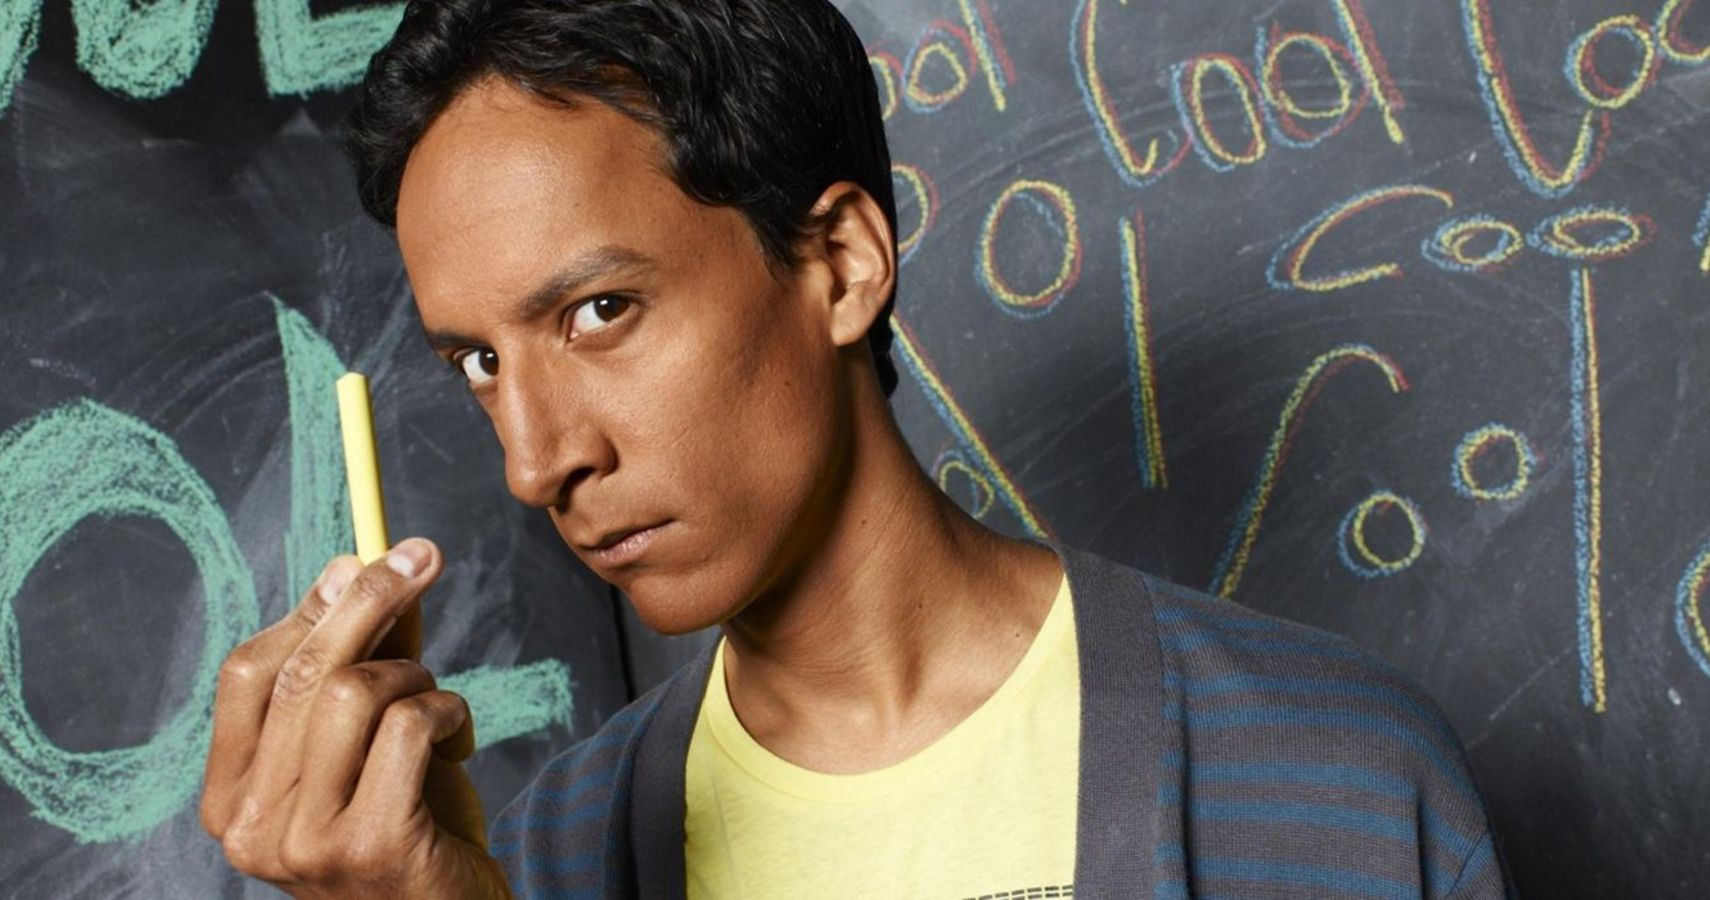 Photo of Danny Pudi as Abed from Community, holding up a piece of chalk and standing in front of a chalkboard.